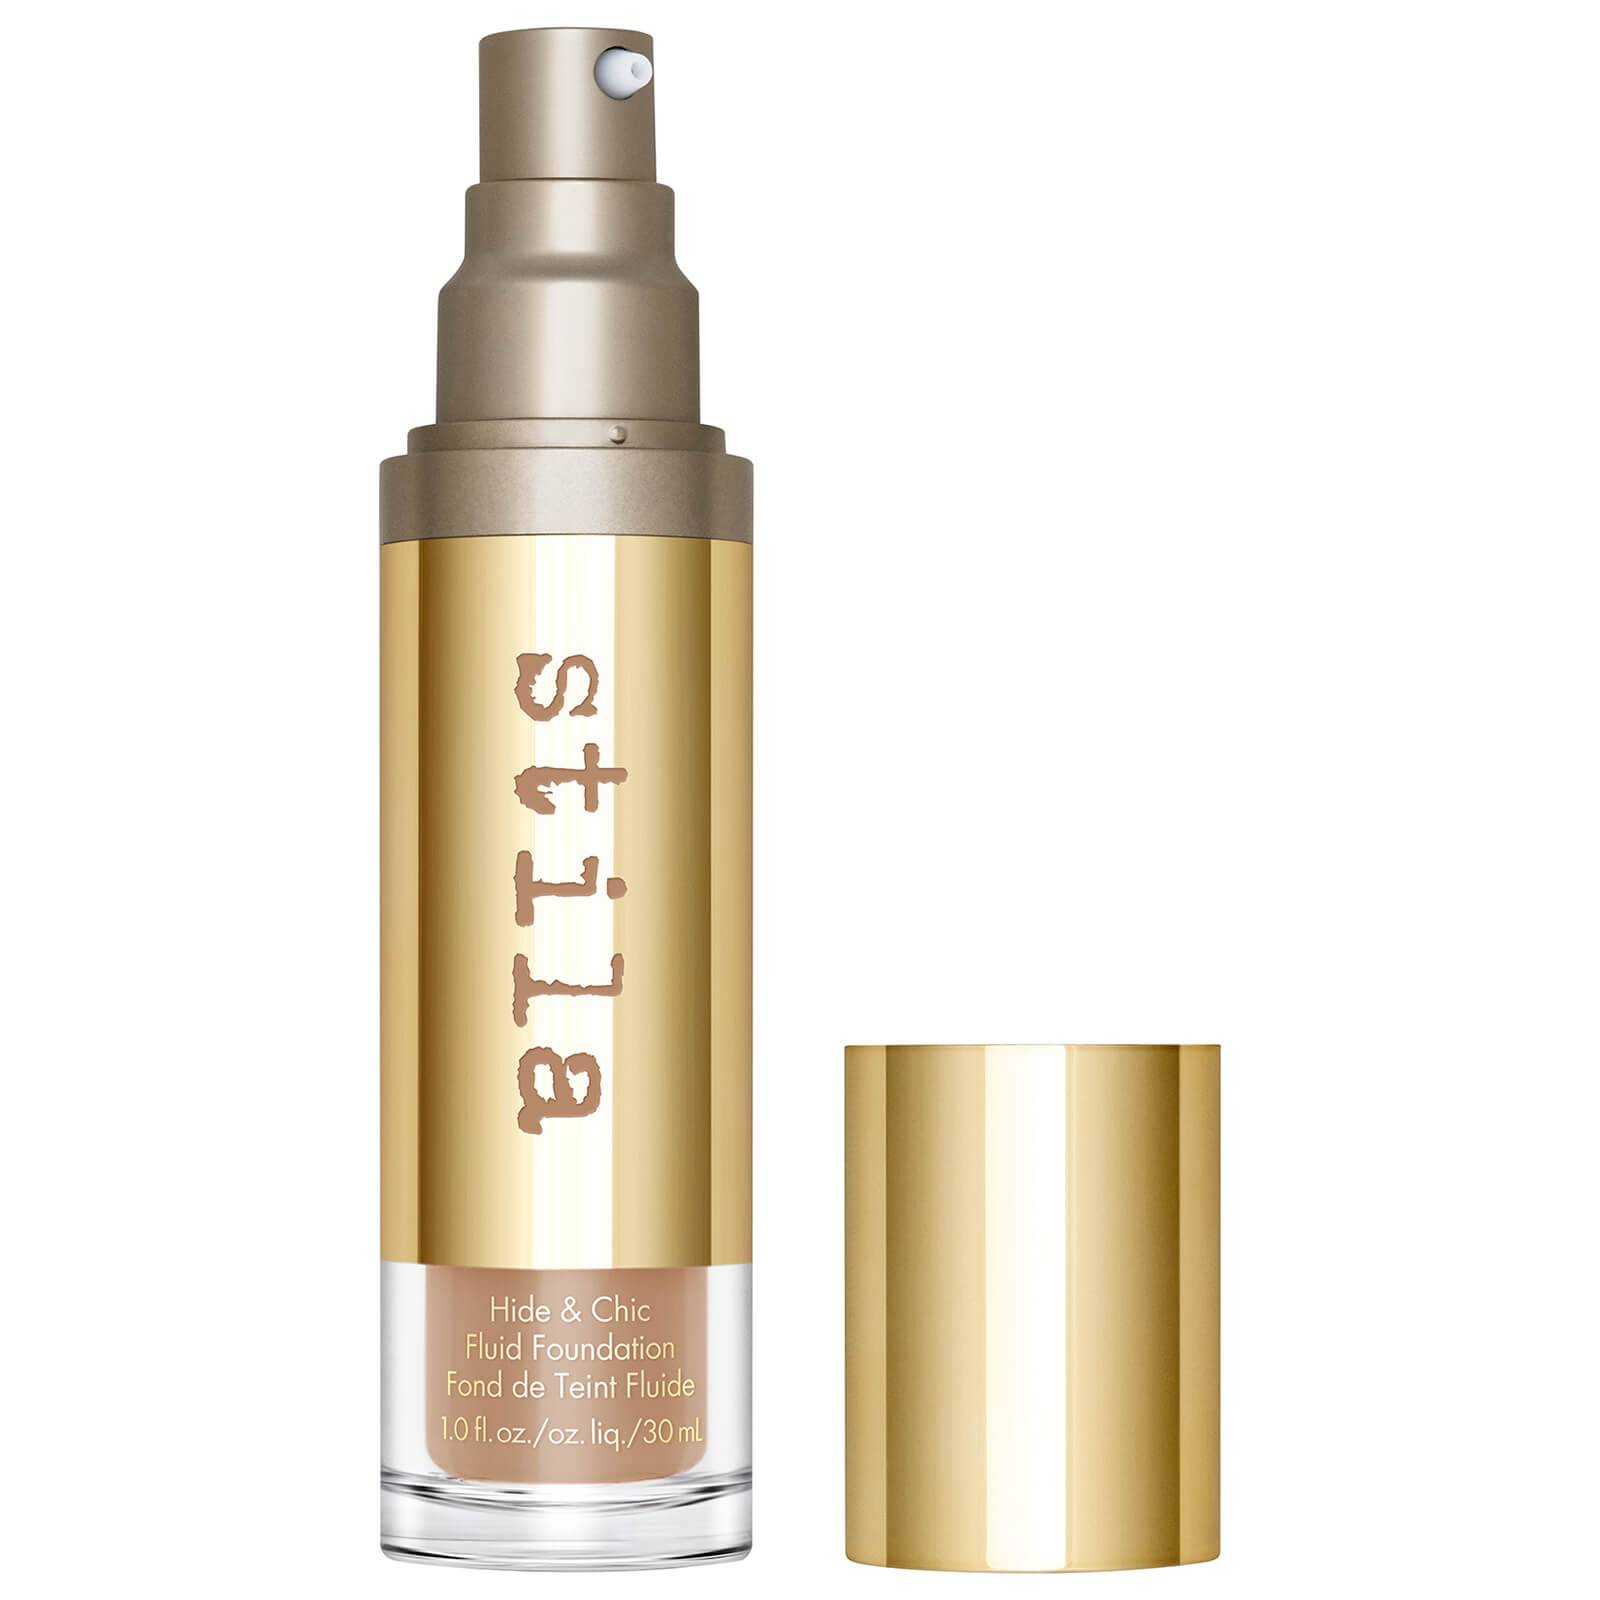 Stila Hide and Chic Fluid Foundation 30ml (Various Shades) - Tan 1